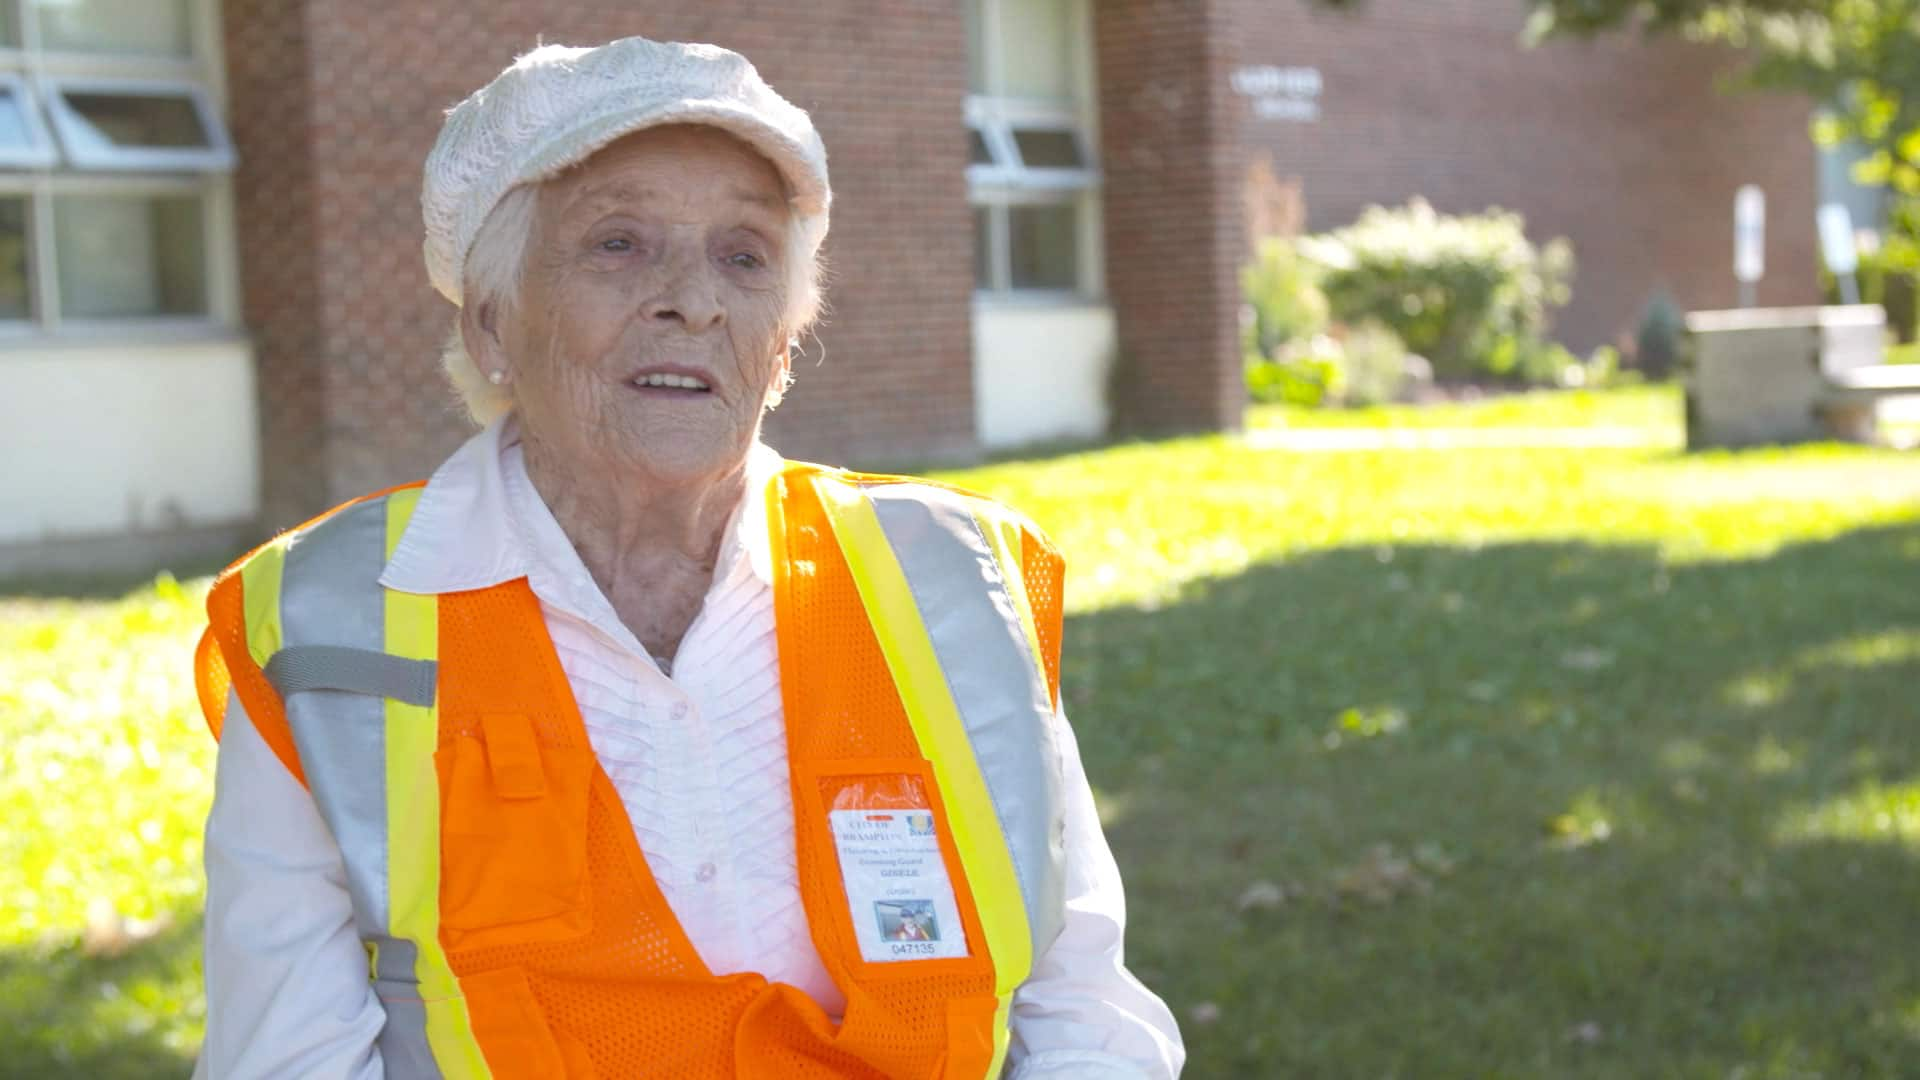 Meet a 94-year-old crossing guard